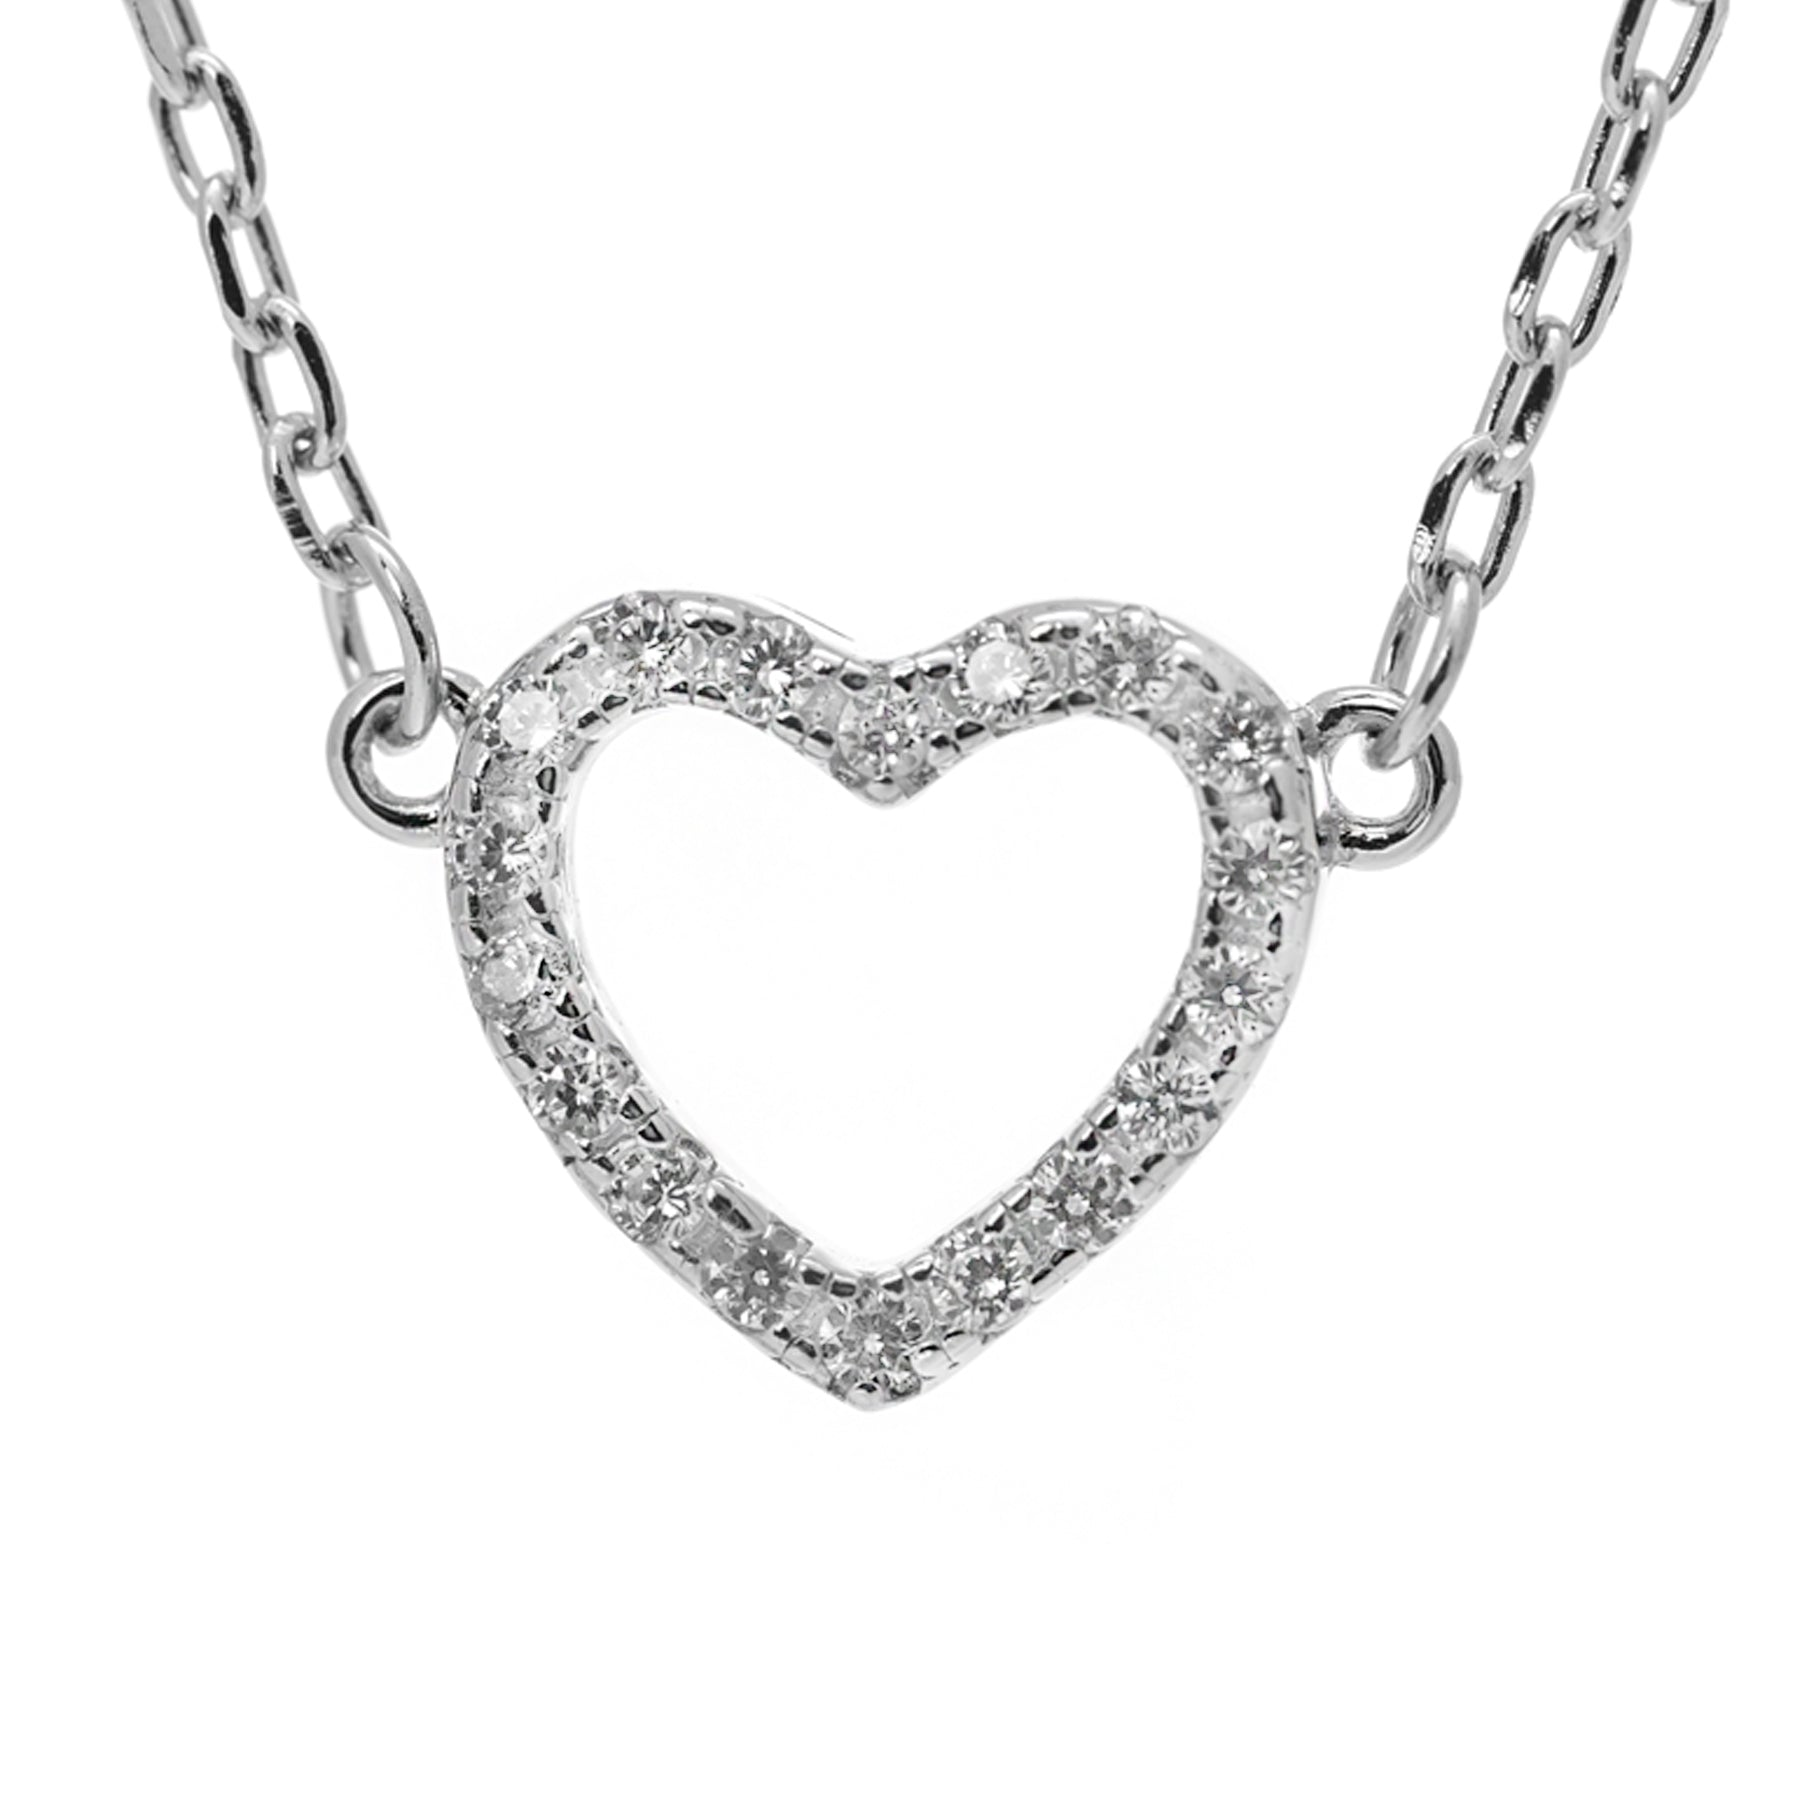 Glitzy heart necklace